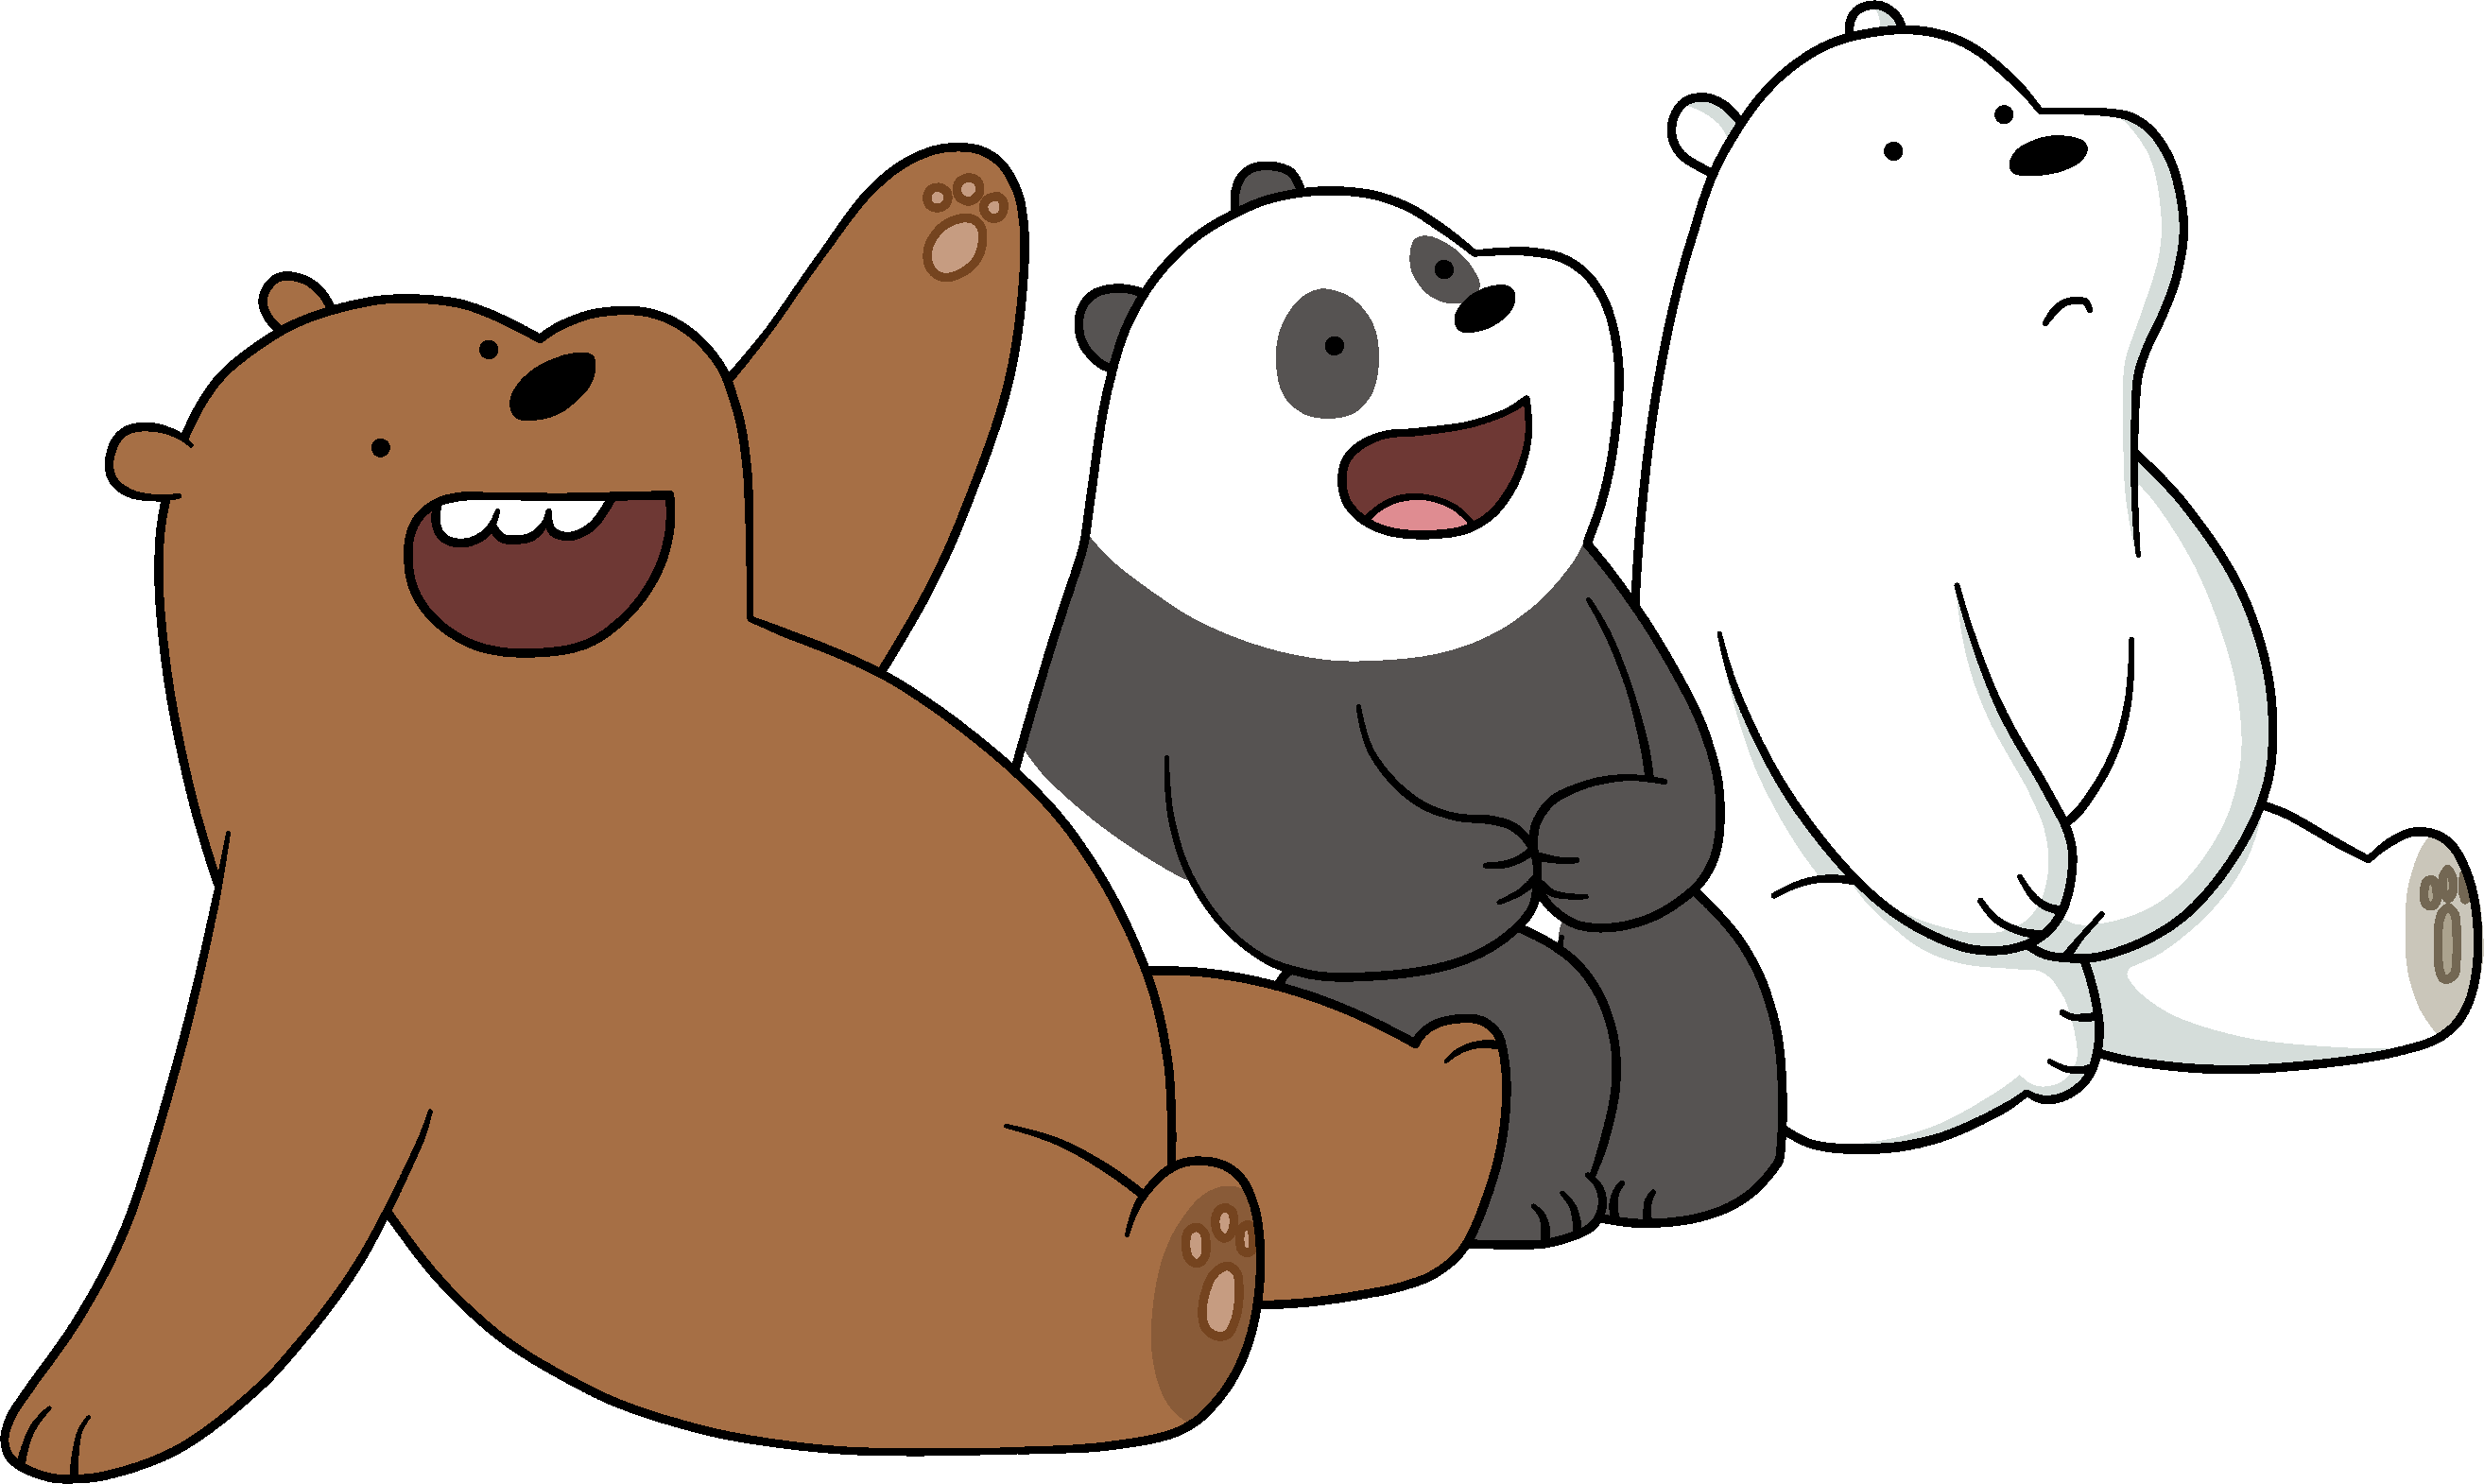 Walrus clipart object. Image bearspng png we